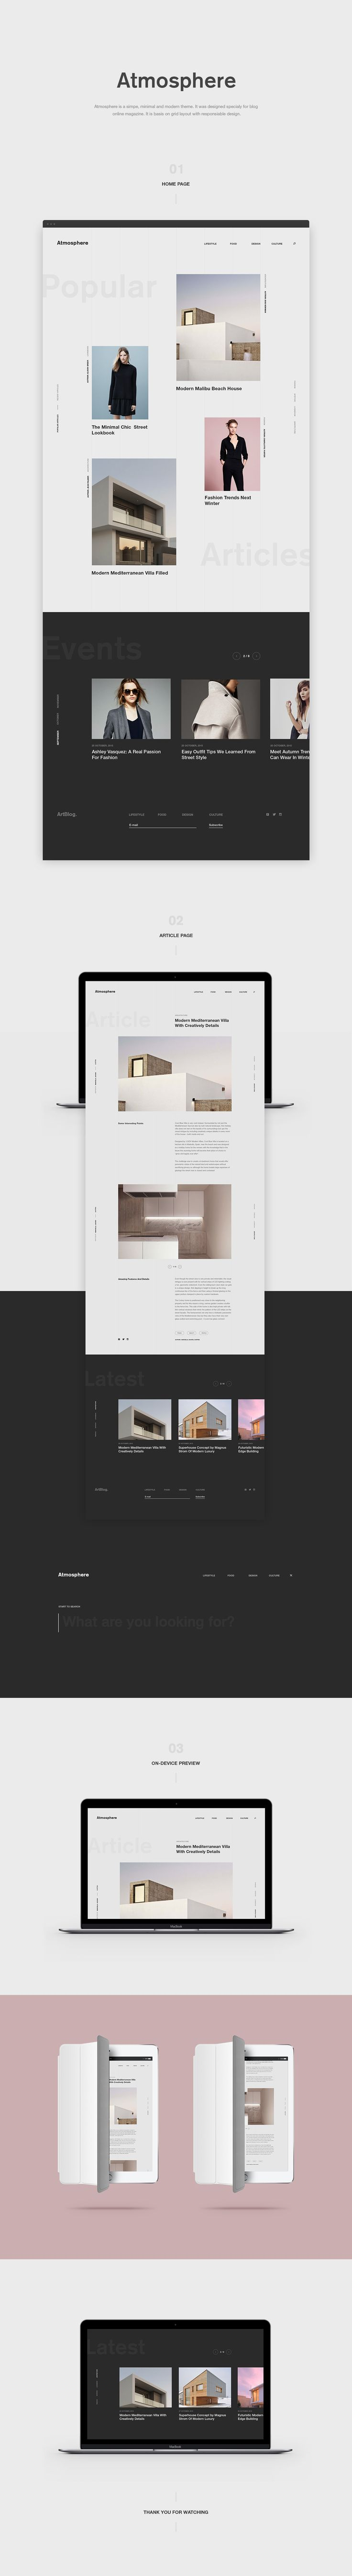 33 best Broken grid layouts images on Pinterest | Web layout ...